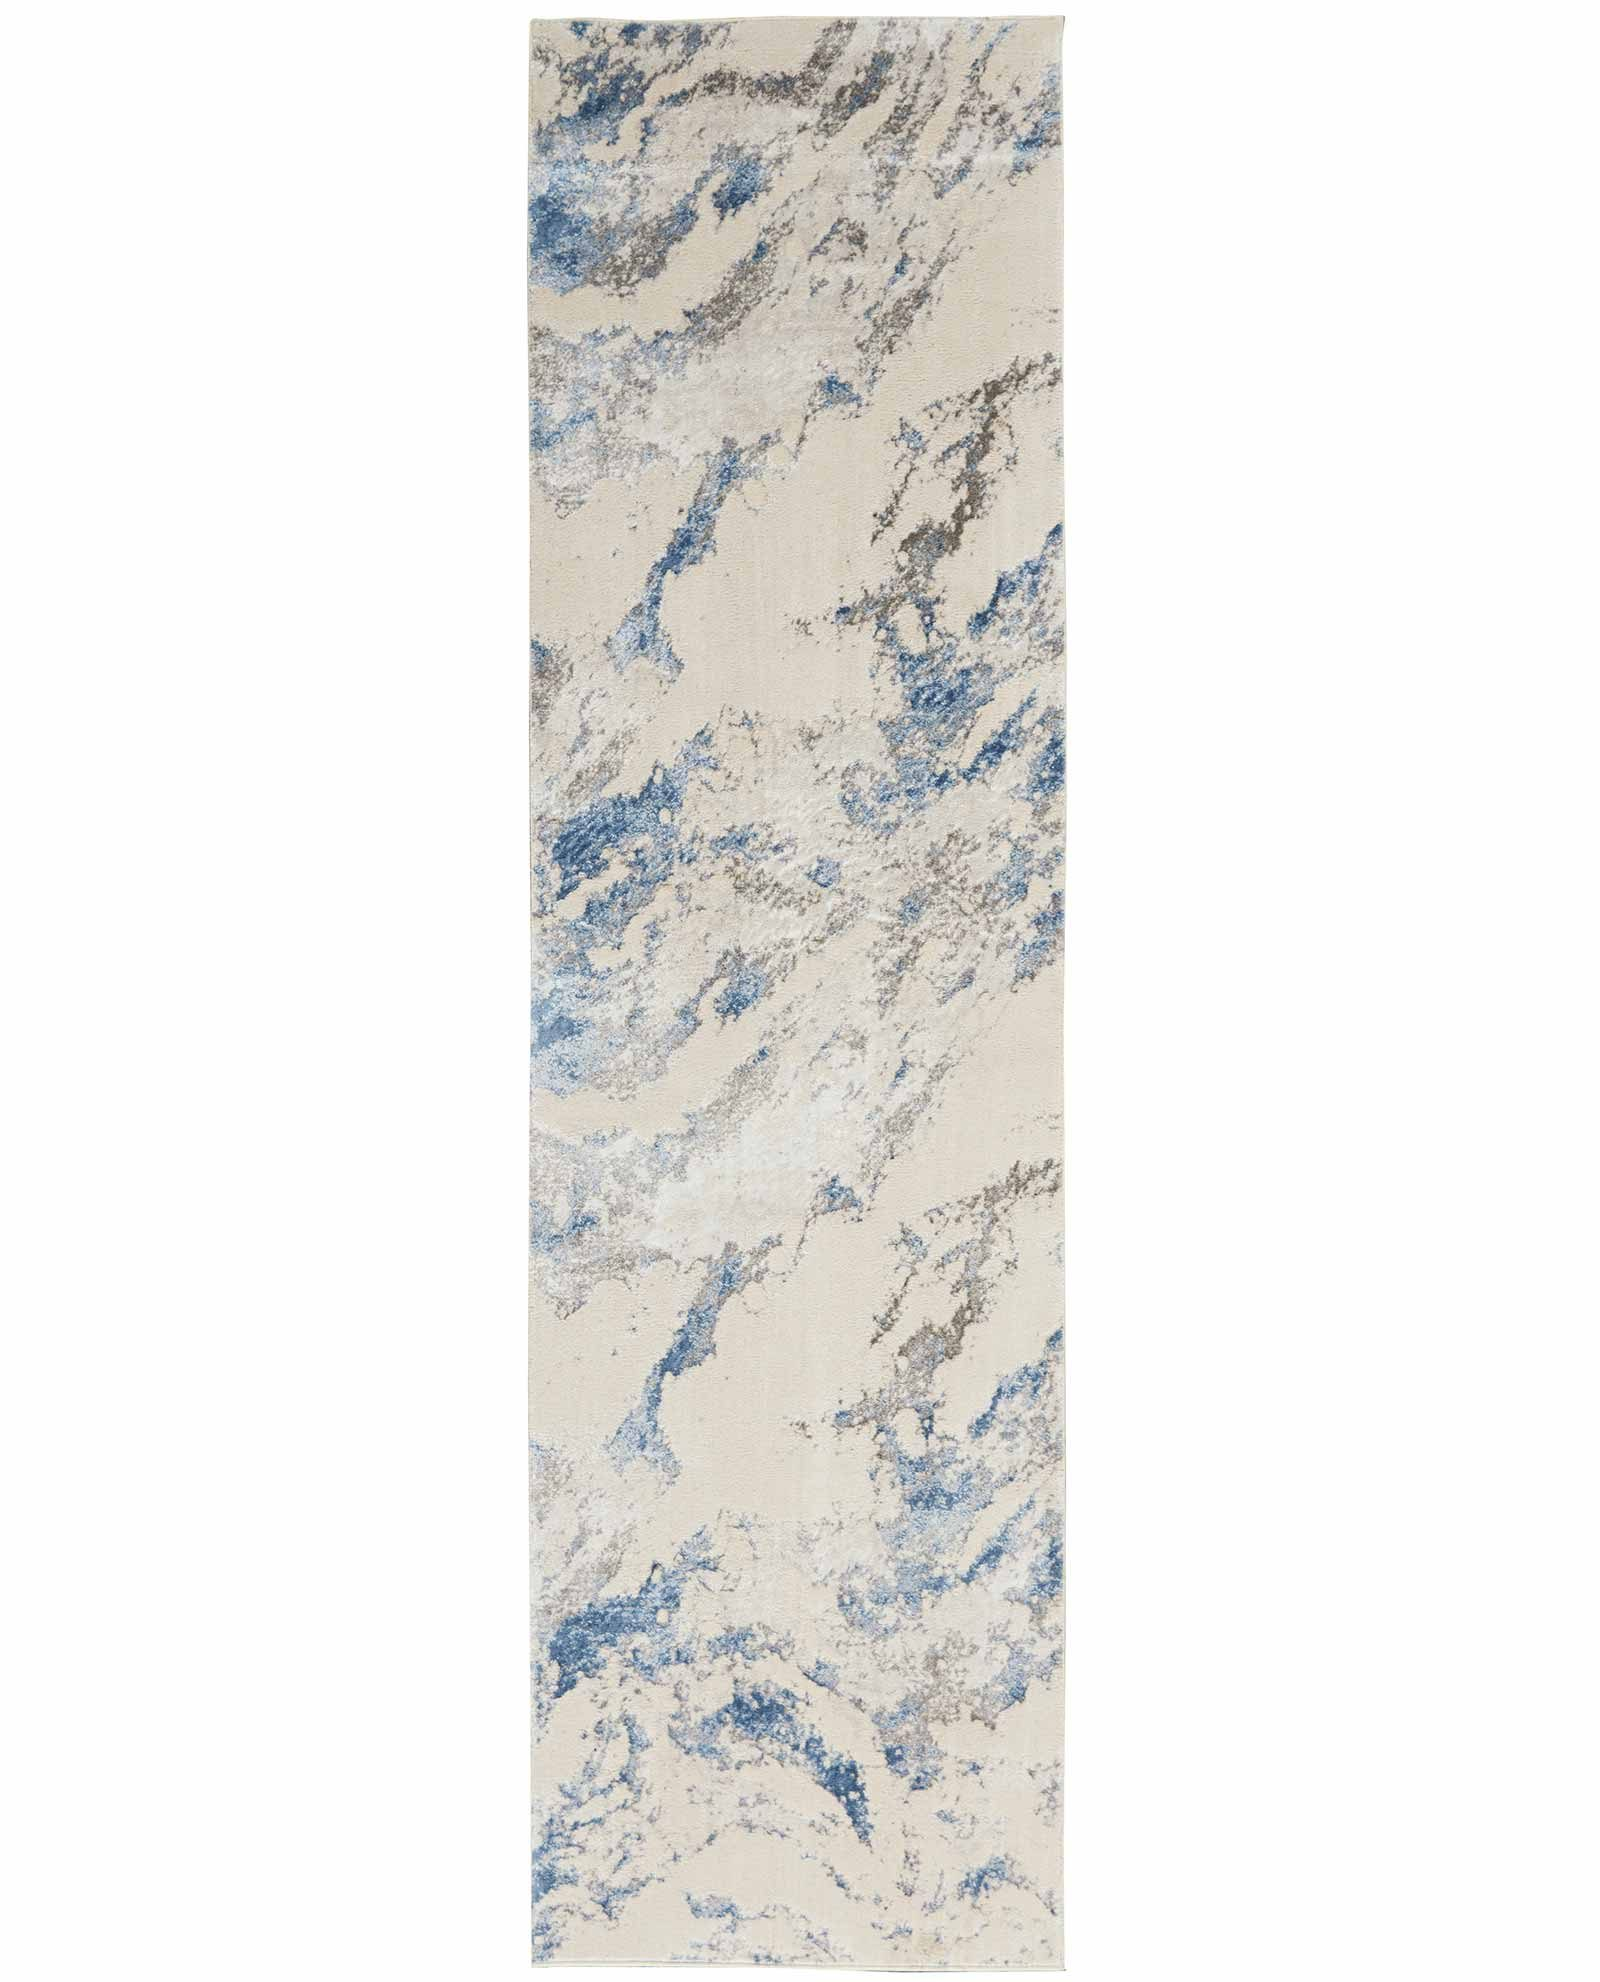 Nourison rug Silky Textures SLY03 BLUE IVORY GREY 2x8 099446710031 flat